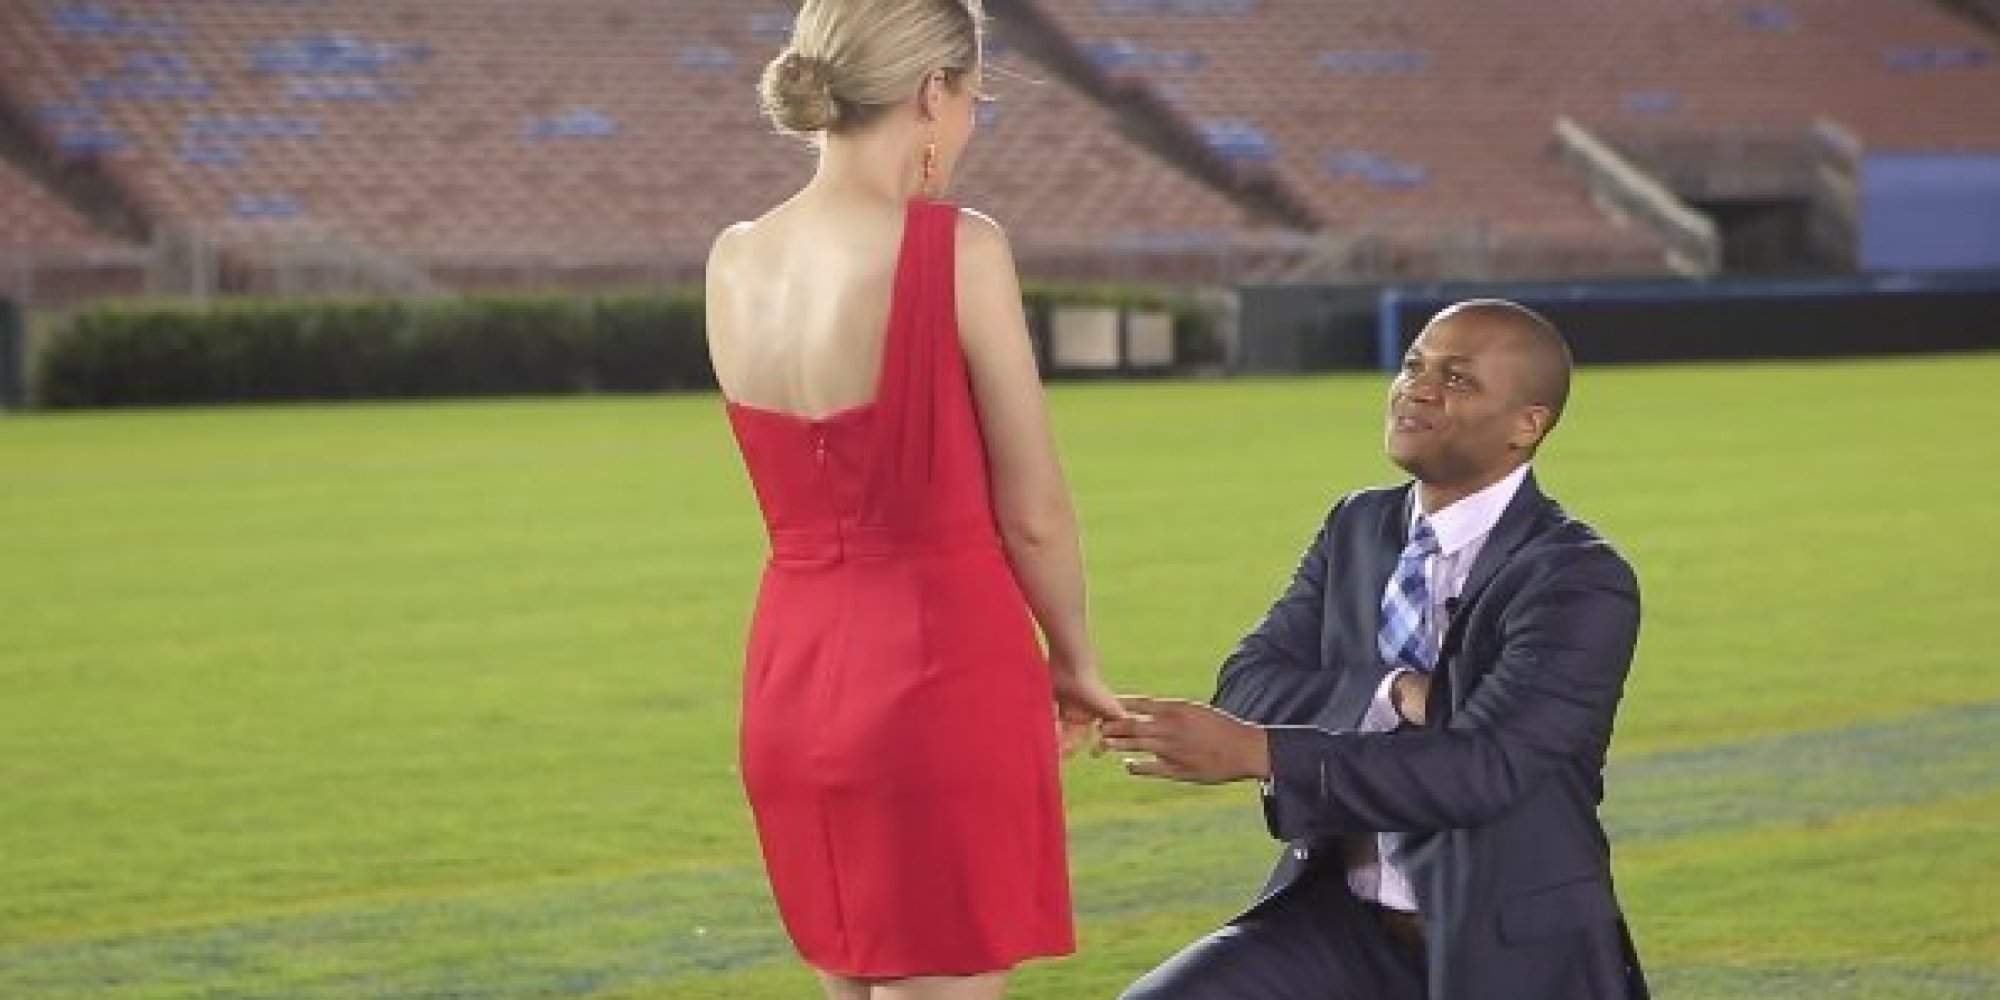 This Man Has Been Saving Up For The Perfect Proposal Since